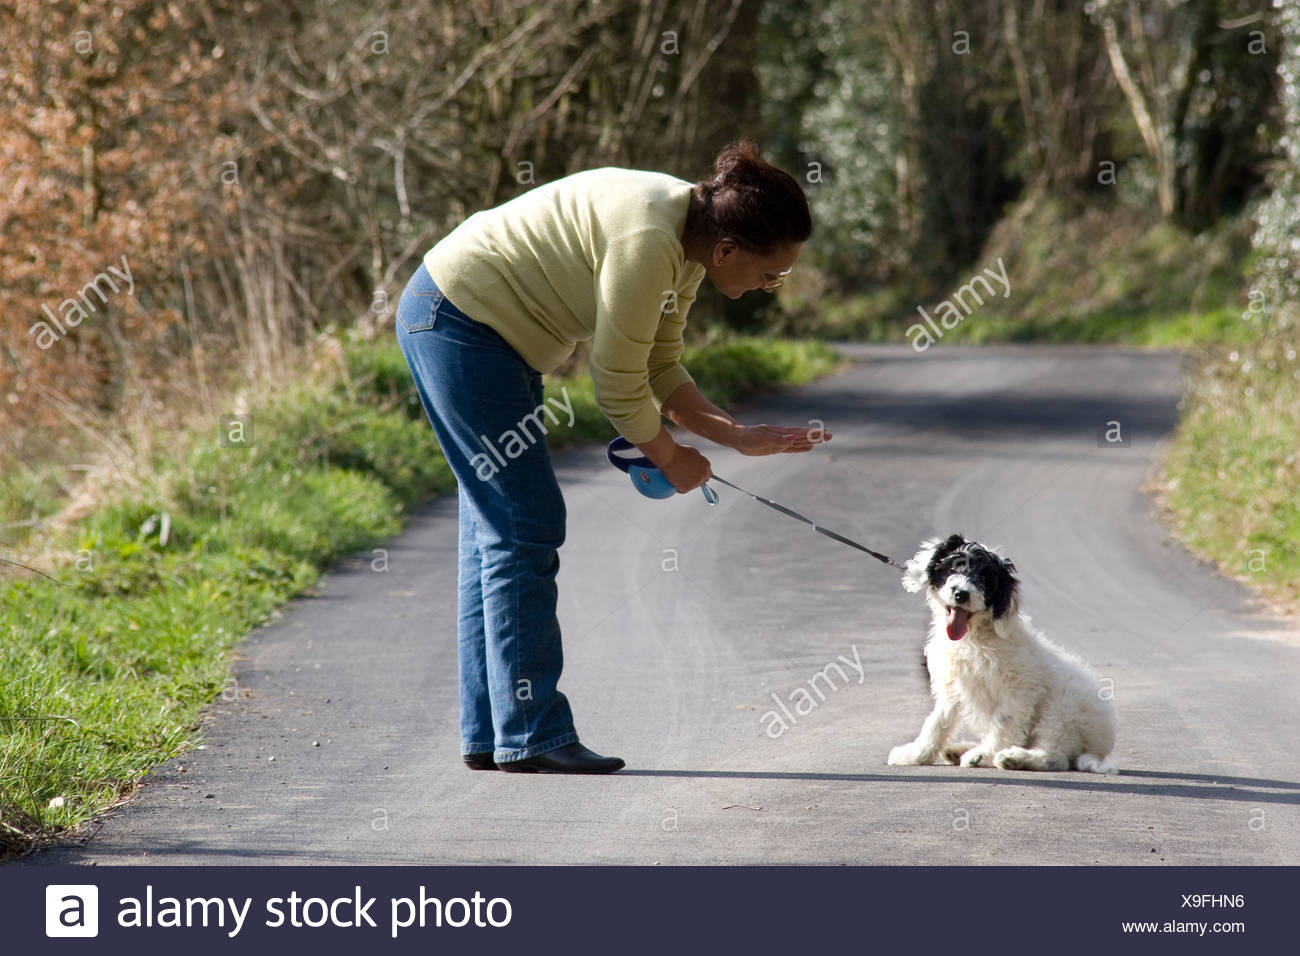 middle aged Asian woman training her puppy to sit and stay - Stock Image